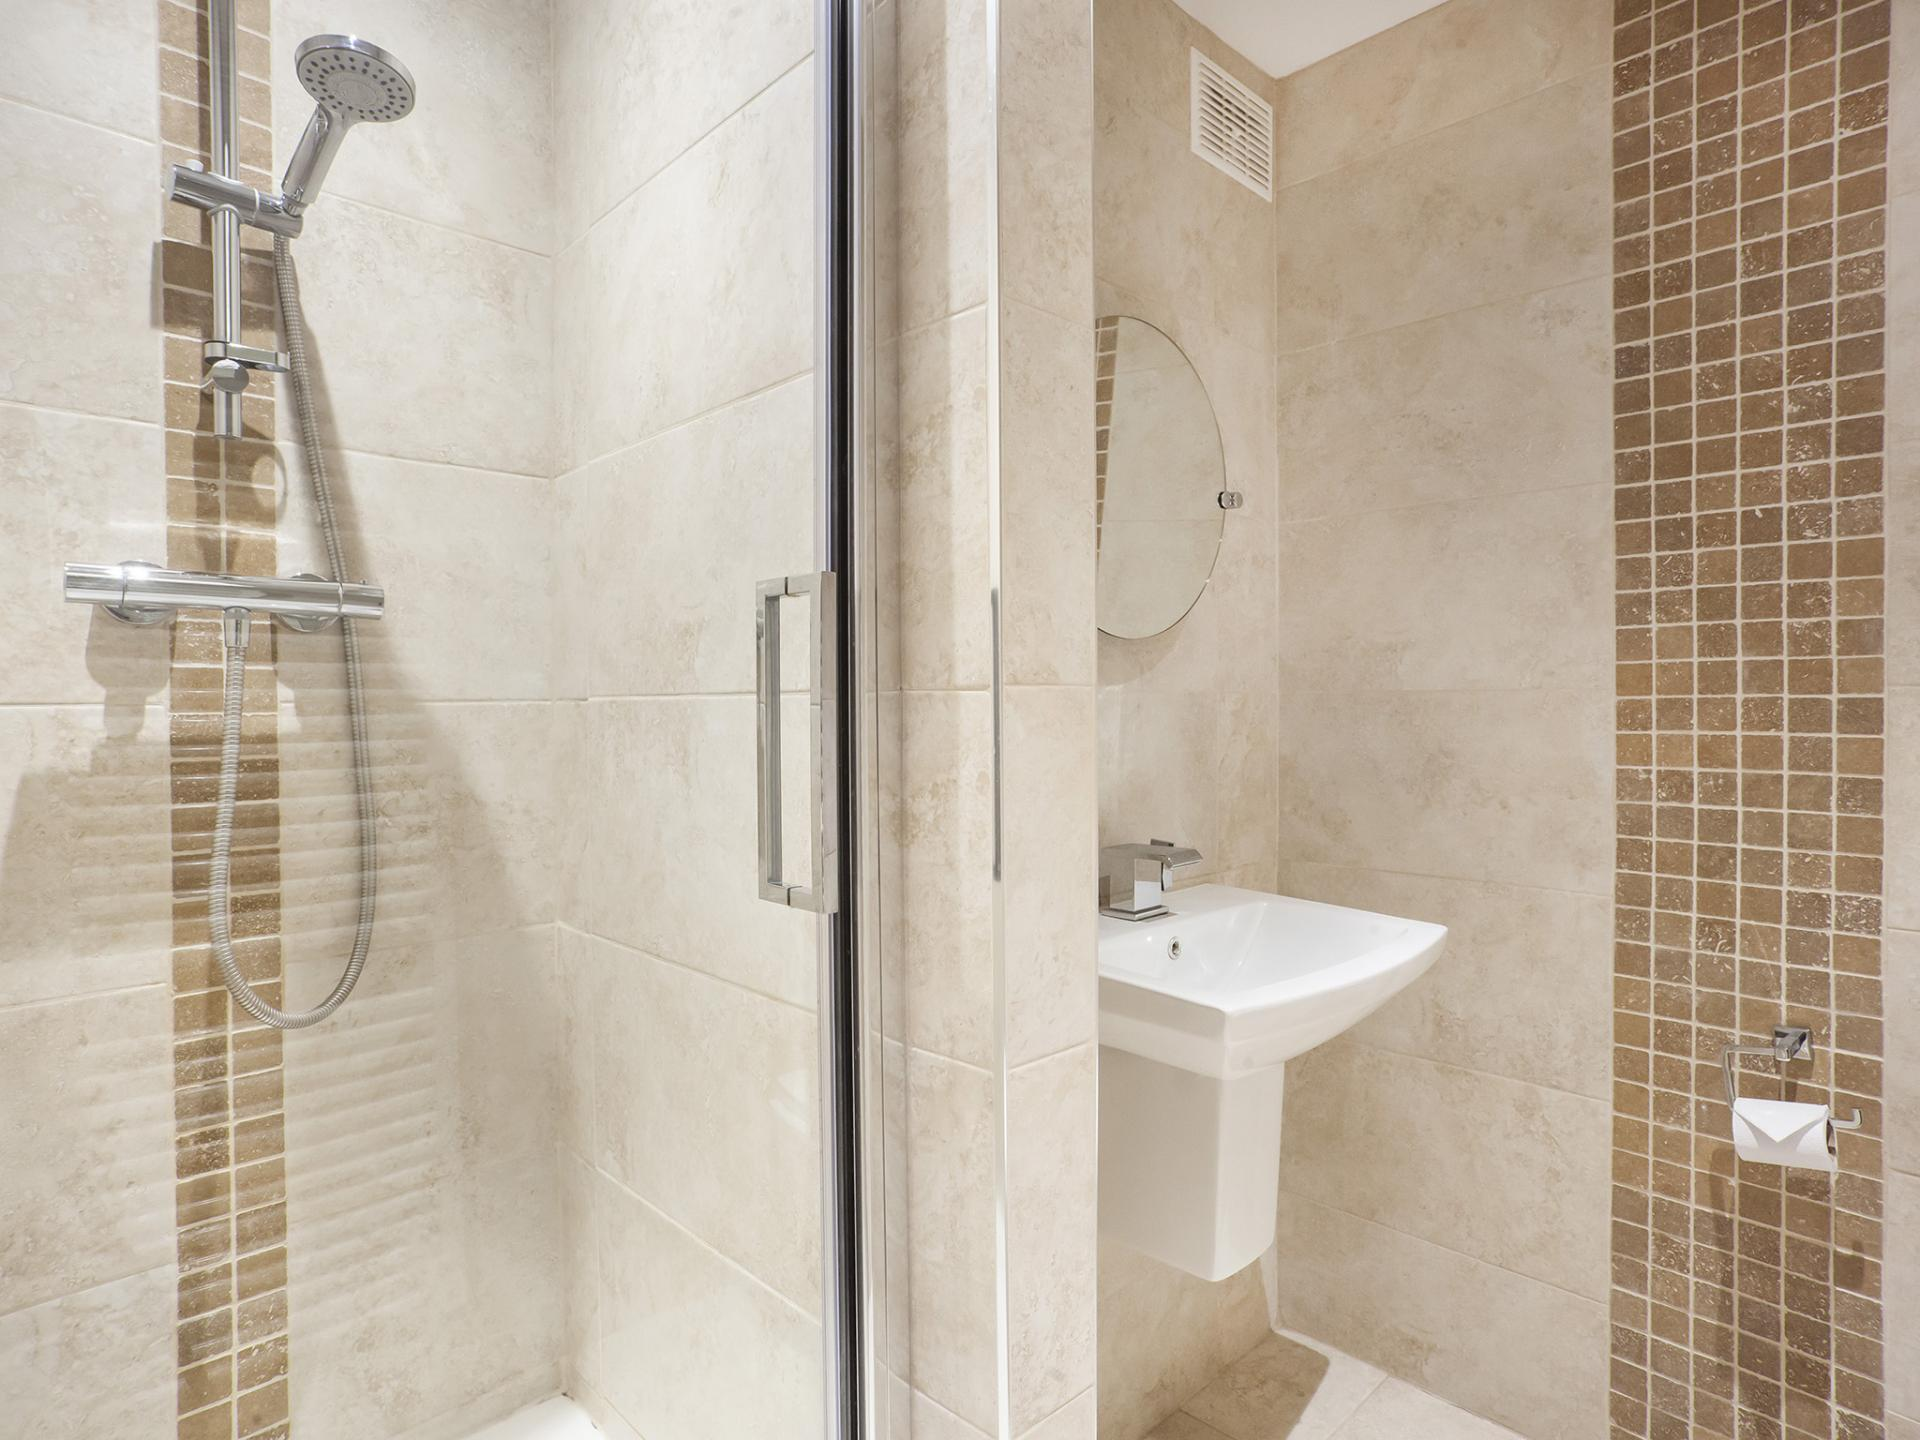 Shower at Fountains View Apartment - Citybase Apartments